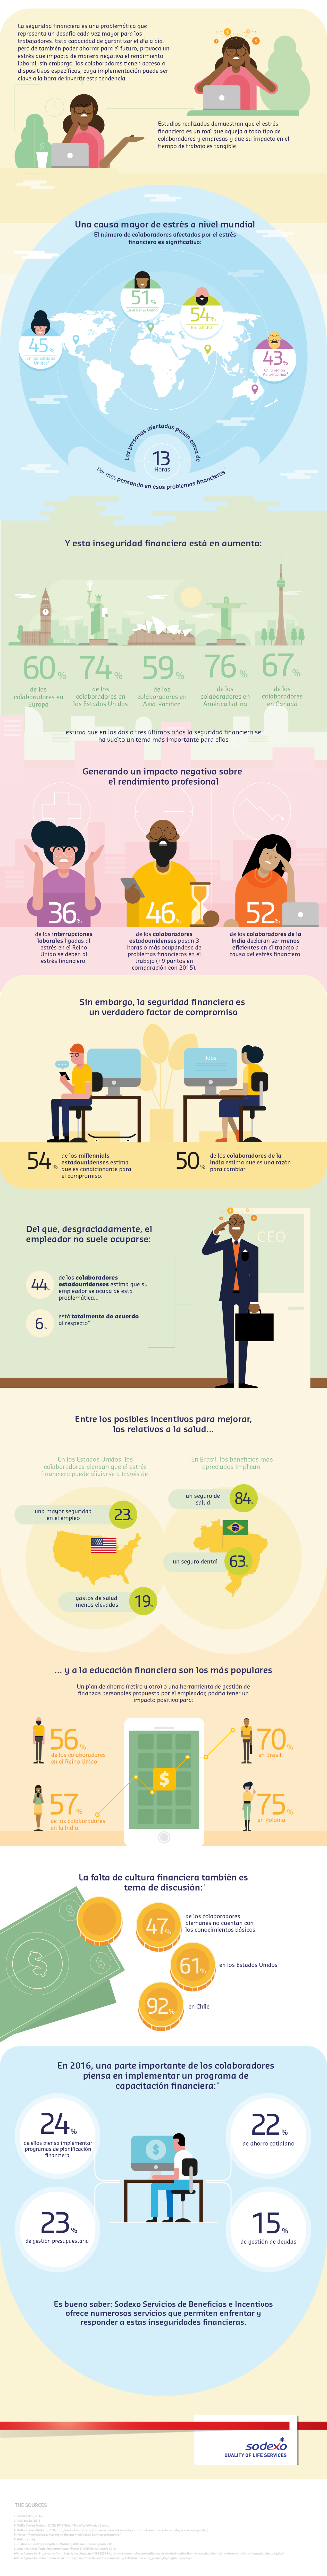 #6-Financial-wellness_Fullinfographic_ES.png